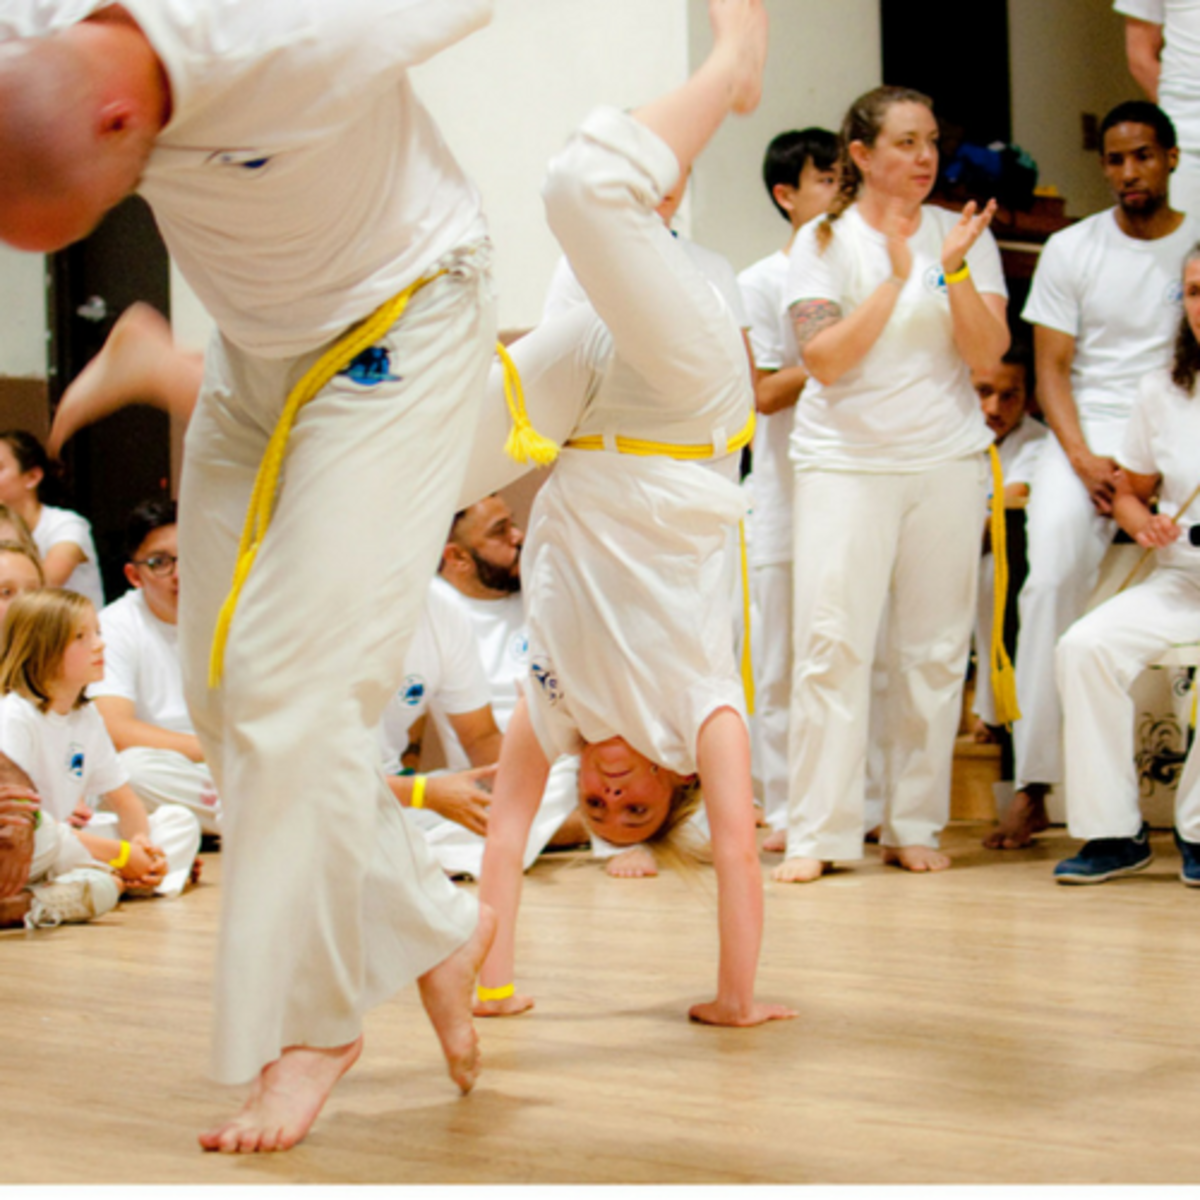 Karin Miller performing Capoeira martial arts